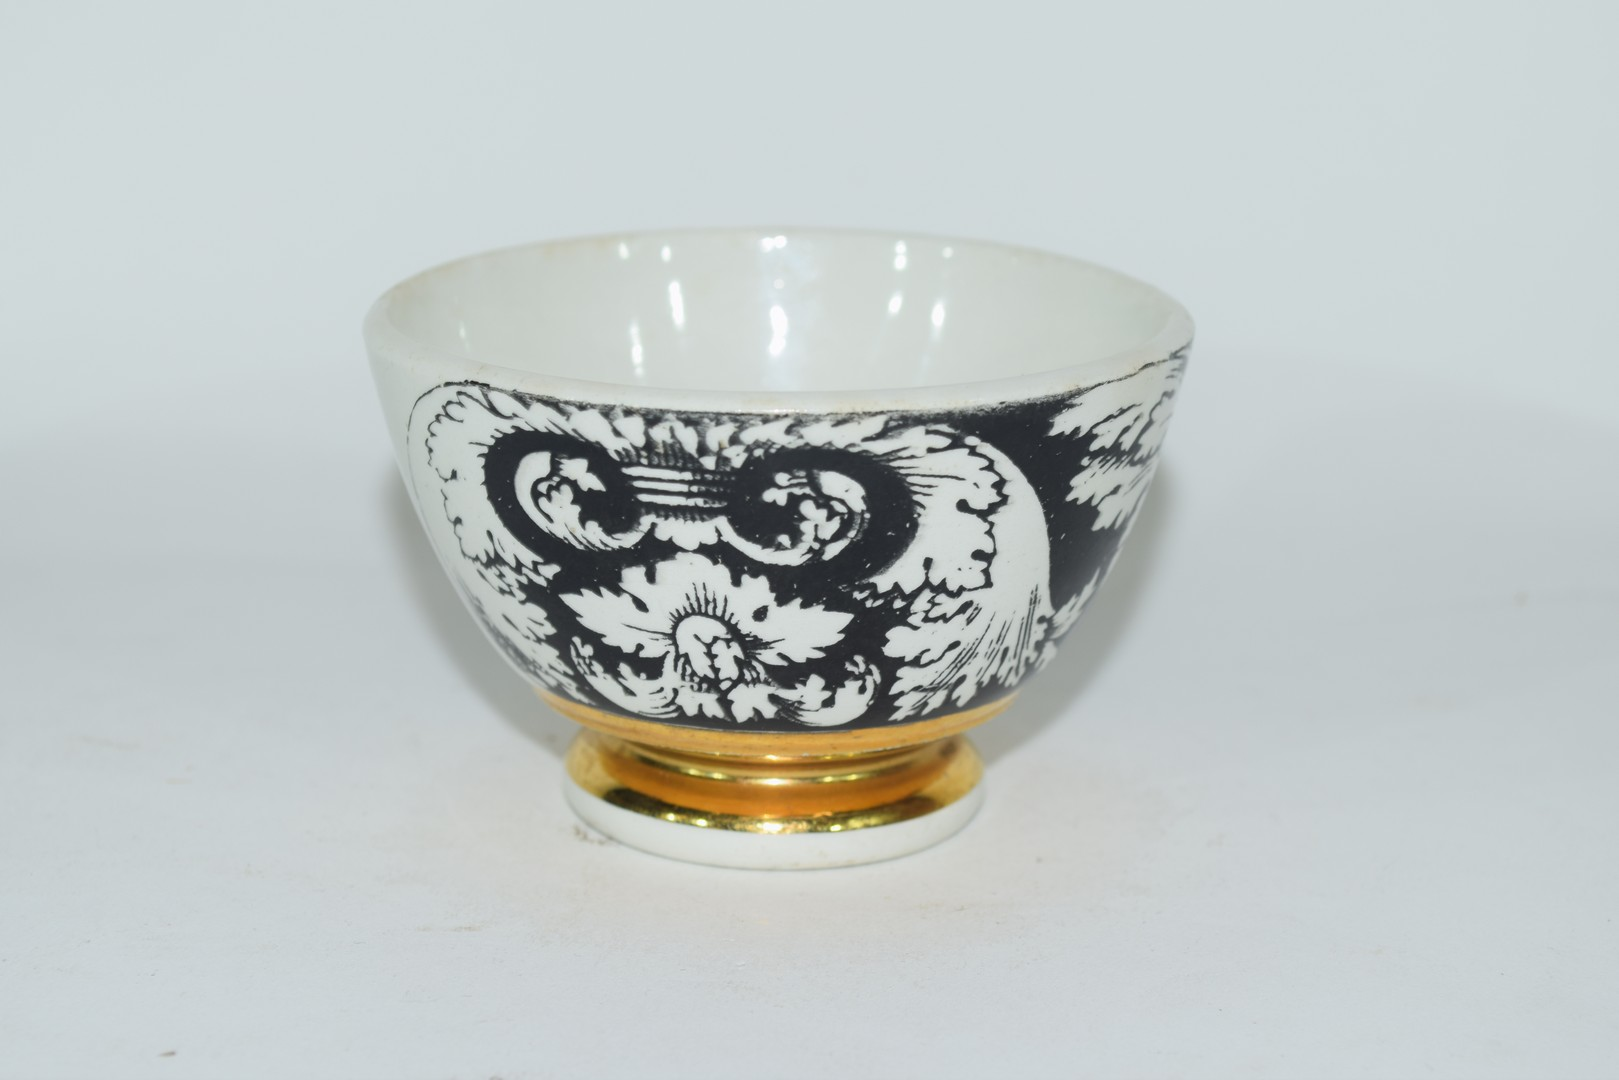 Small bowl decorated in black and white with a design by Fornisetti, - Image 3 of 5